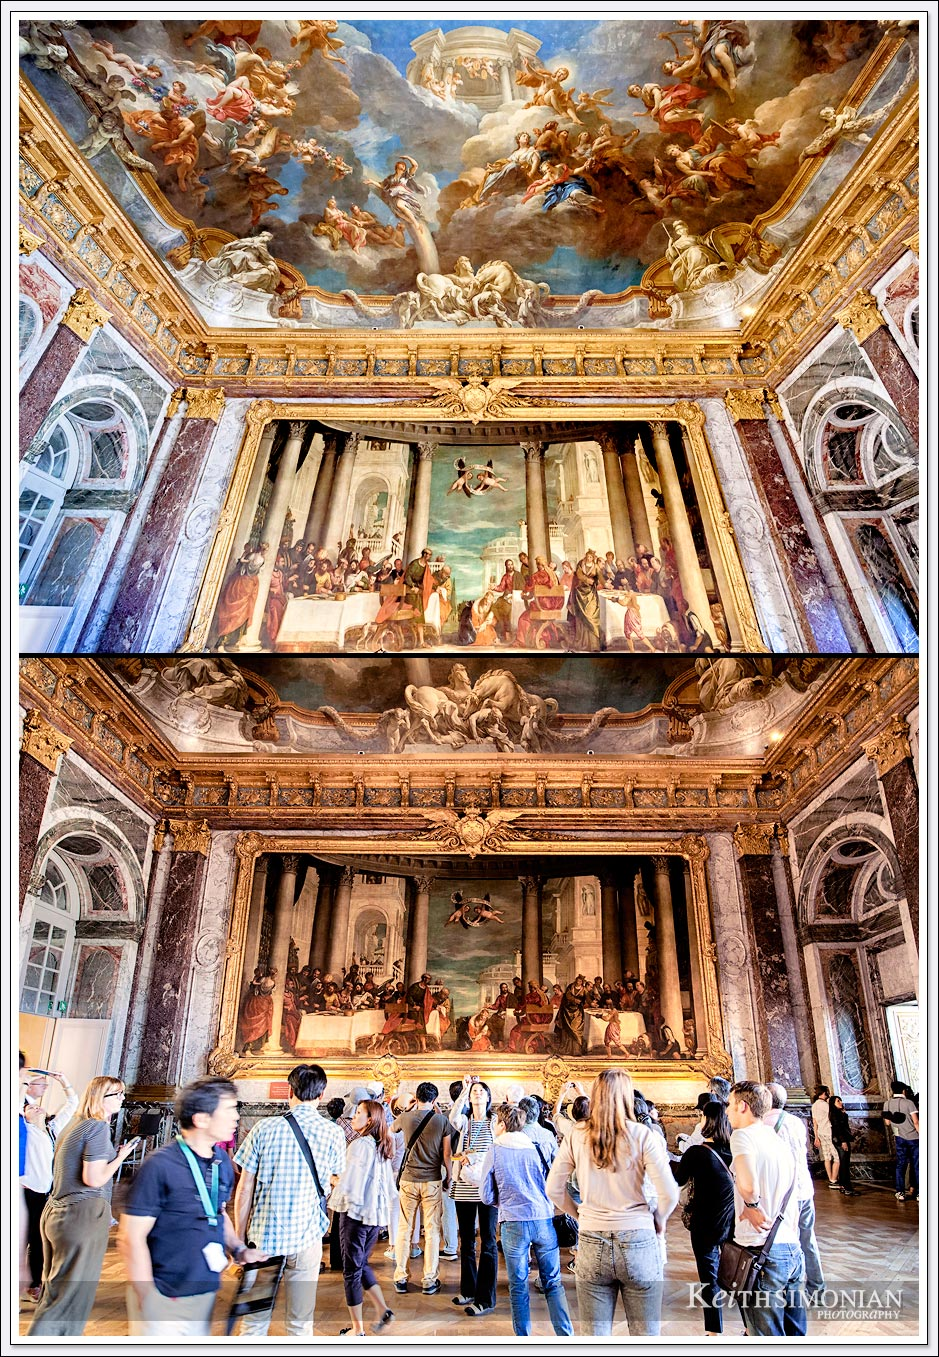 The palace of Versailles combo photo showing the same location with and without the tourists.